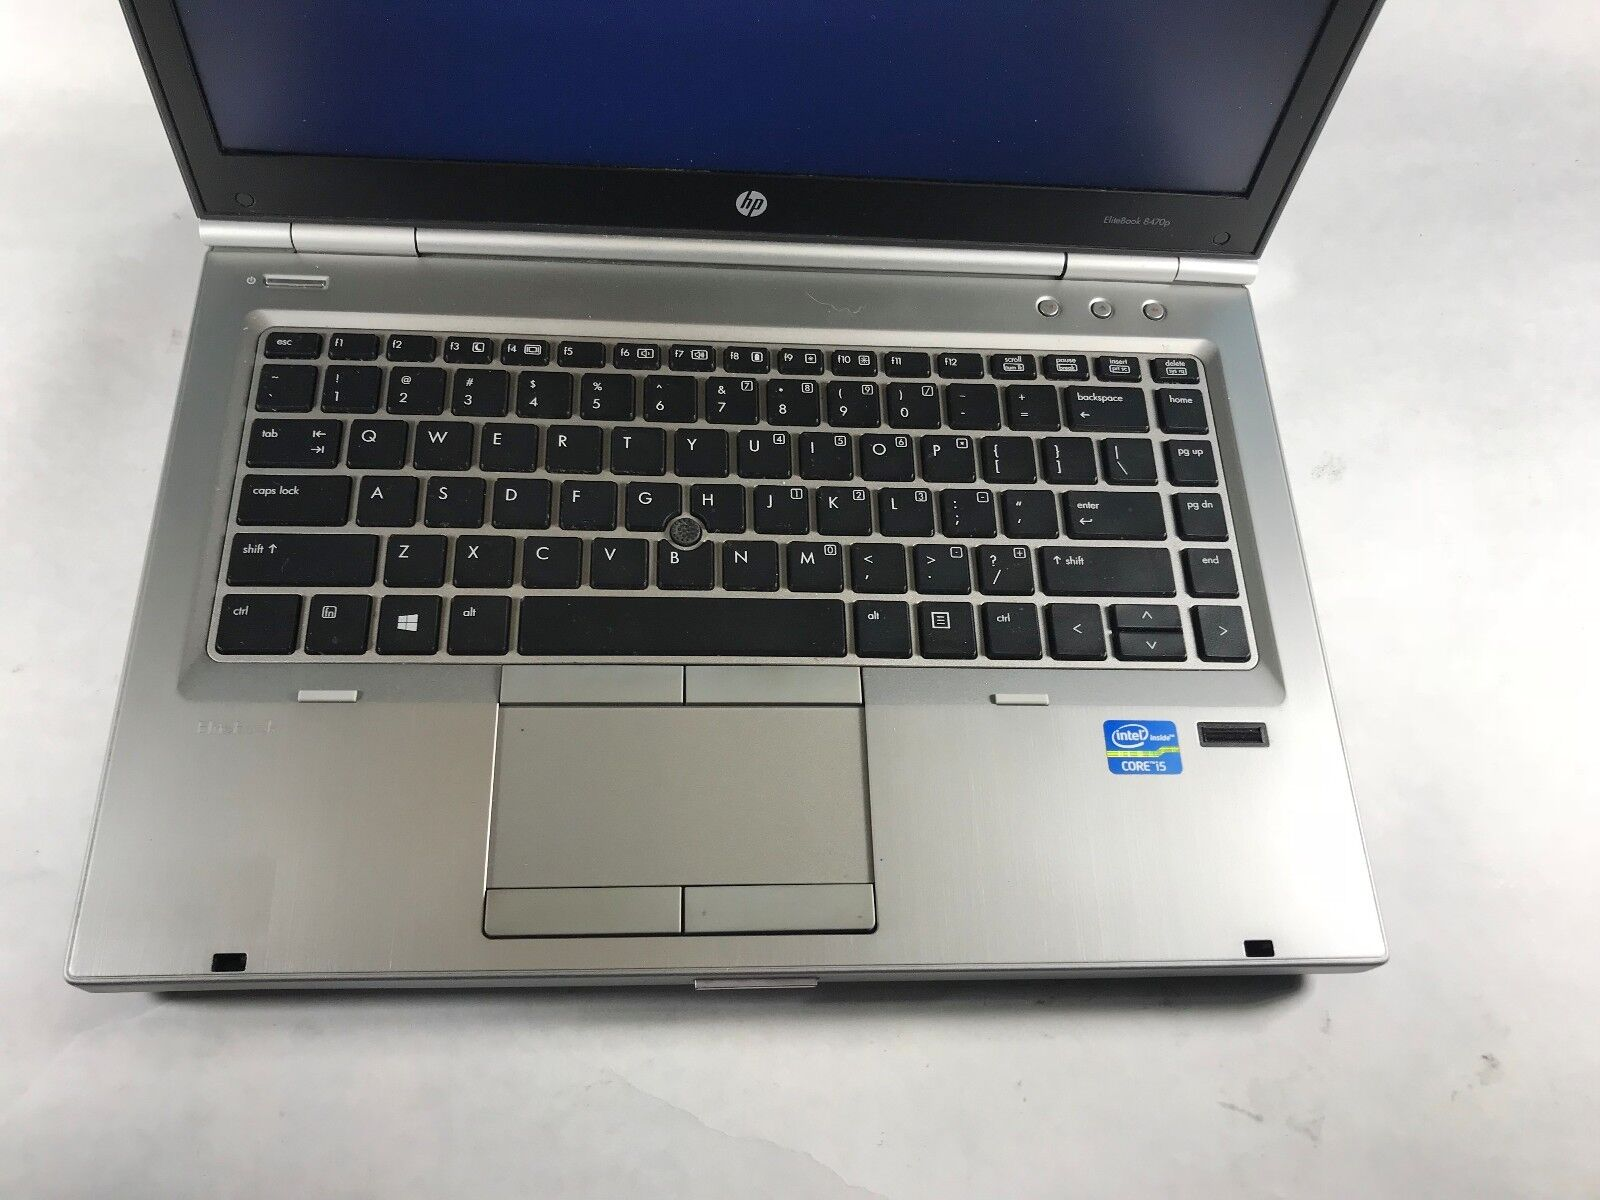 Laptop Windows - HP EliteBook 8460p Laptop / i5 2.5GHZ /  4GB DDR3  Windows 10 / Battery TESTED